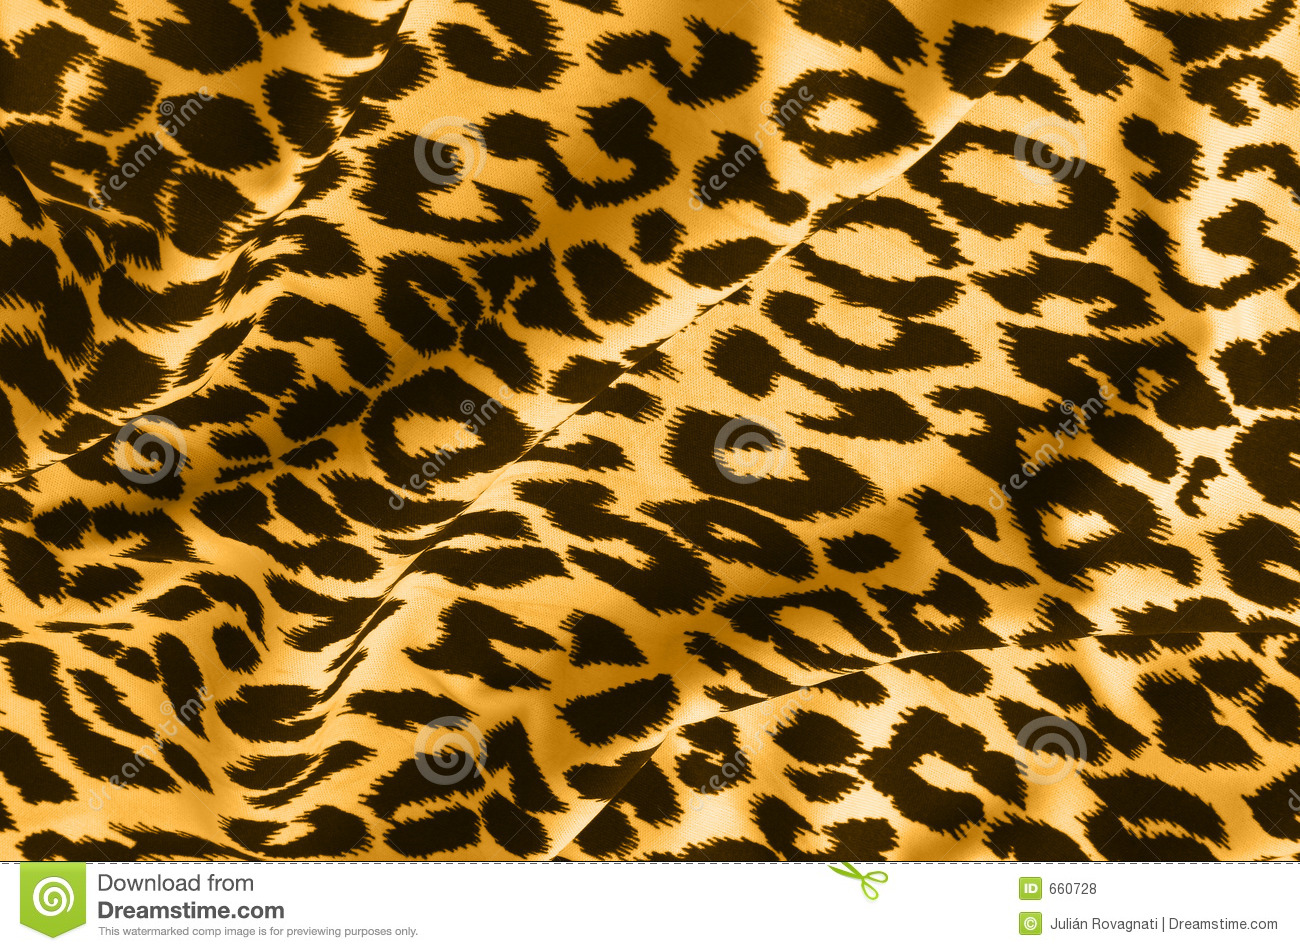 Leopard Print Fabric animal print on fabric royalty free stock photos - image: 660728